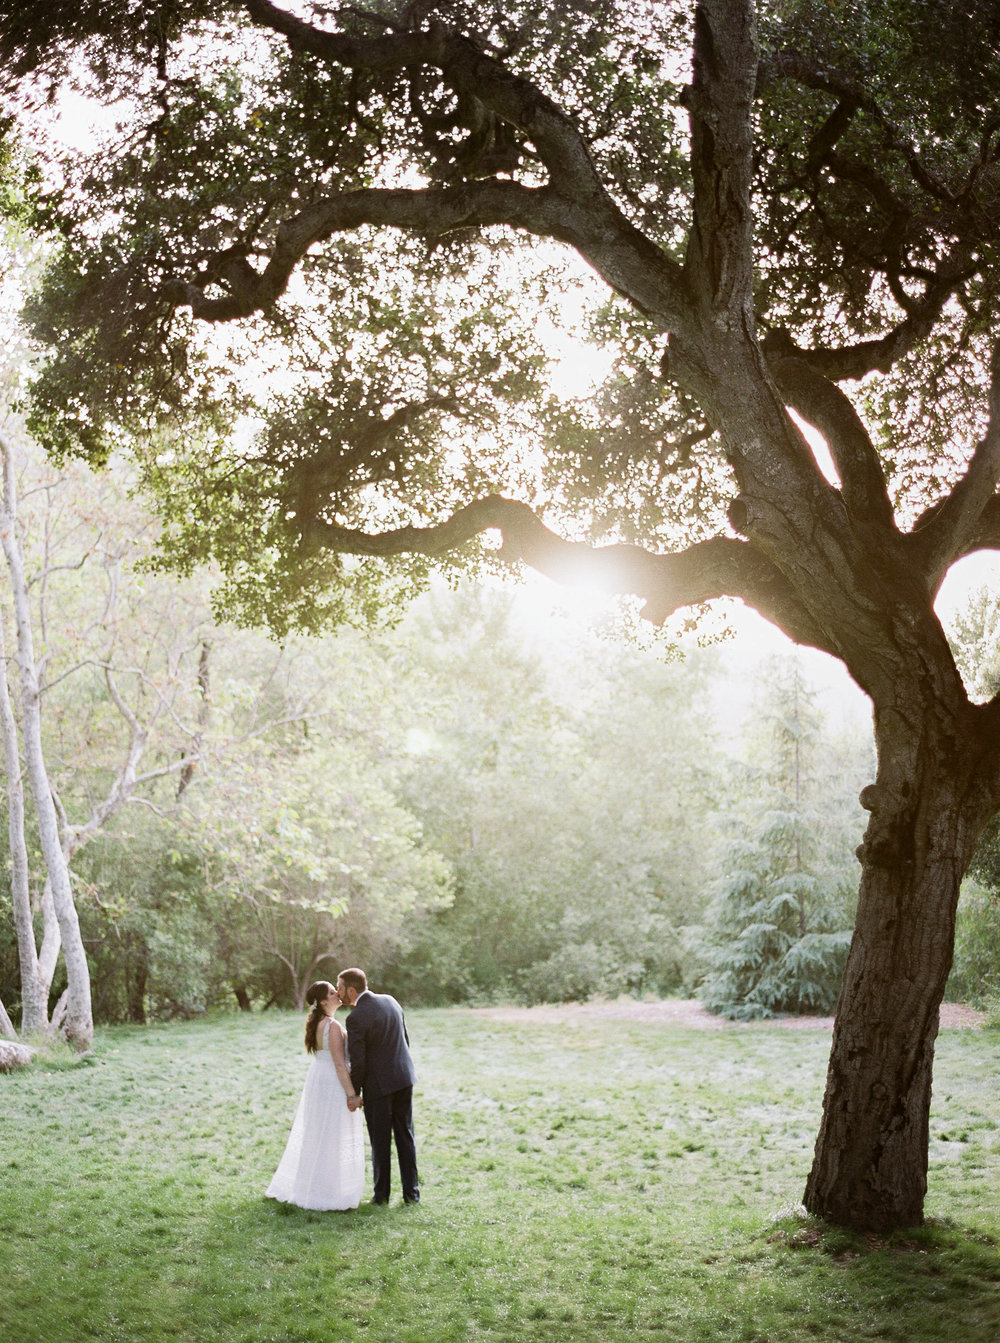 Brandon Sampson Photography. Carmel Valley Wedding Portrait. Film Photography.